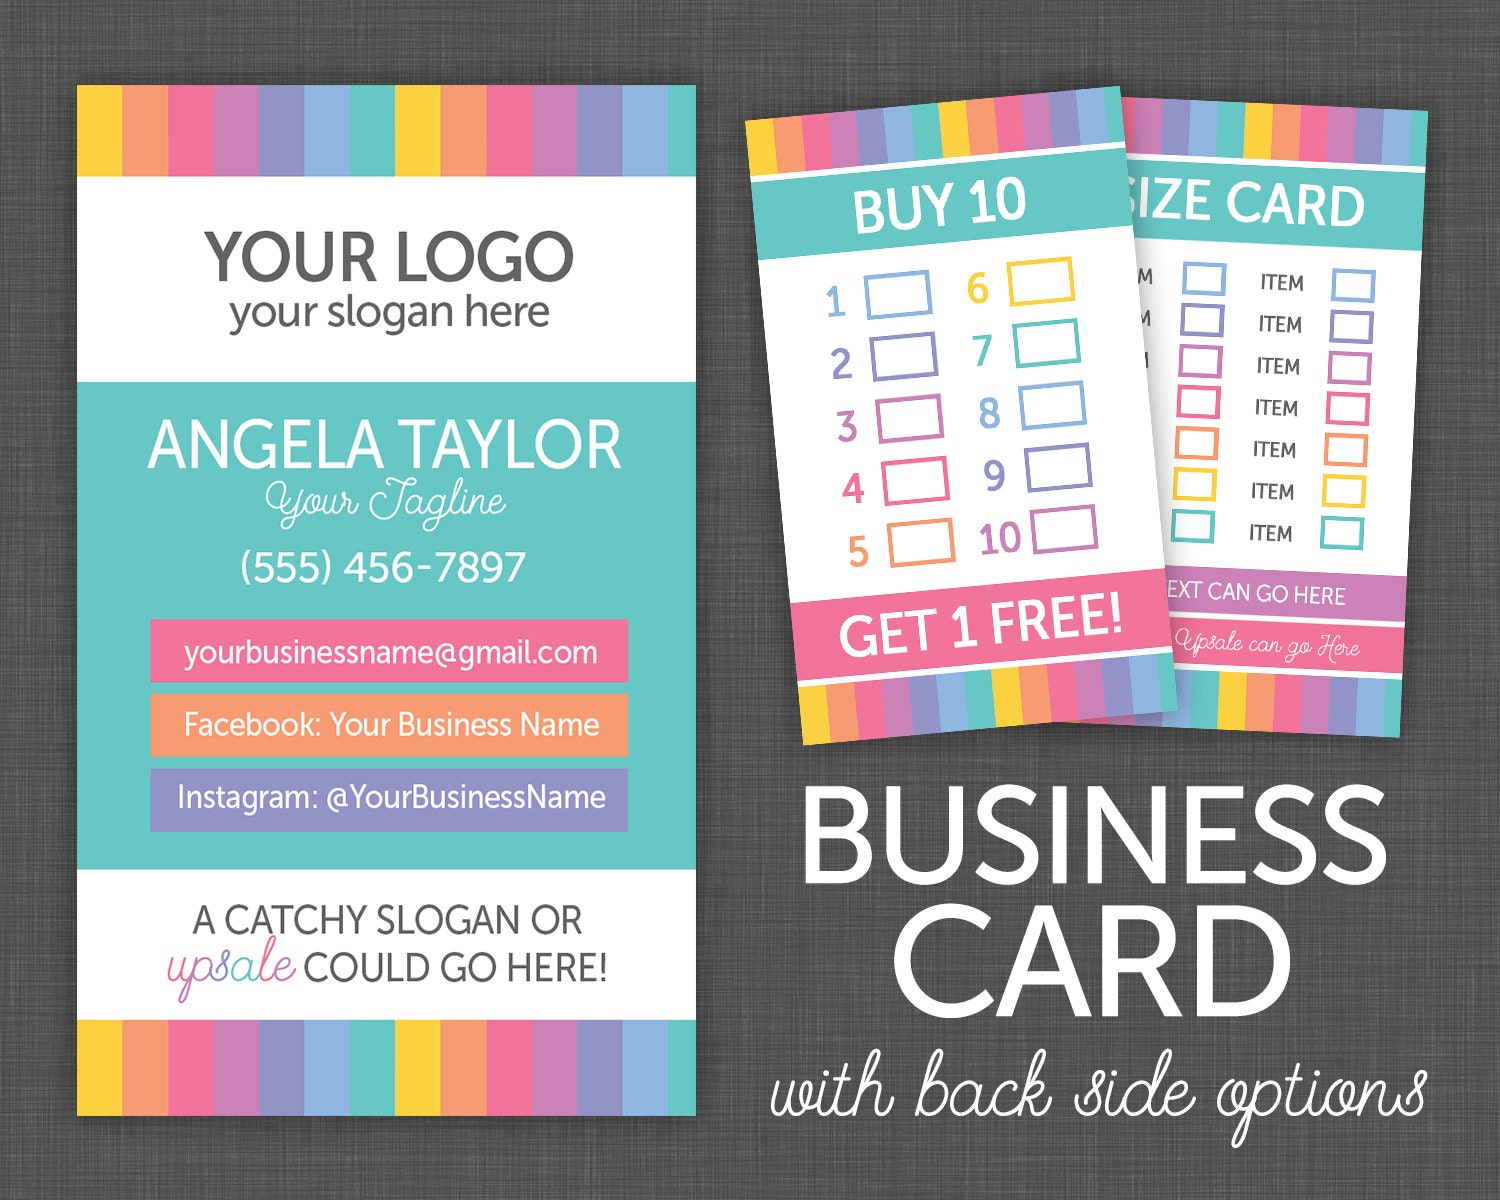 Business Cards My Size Card Punch Card My Size Card